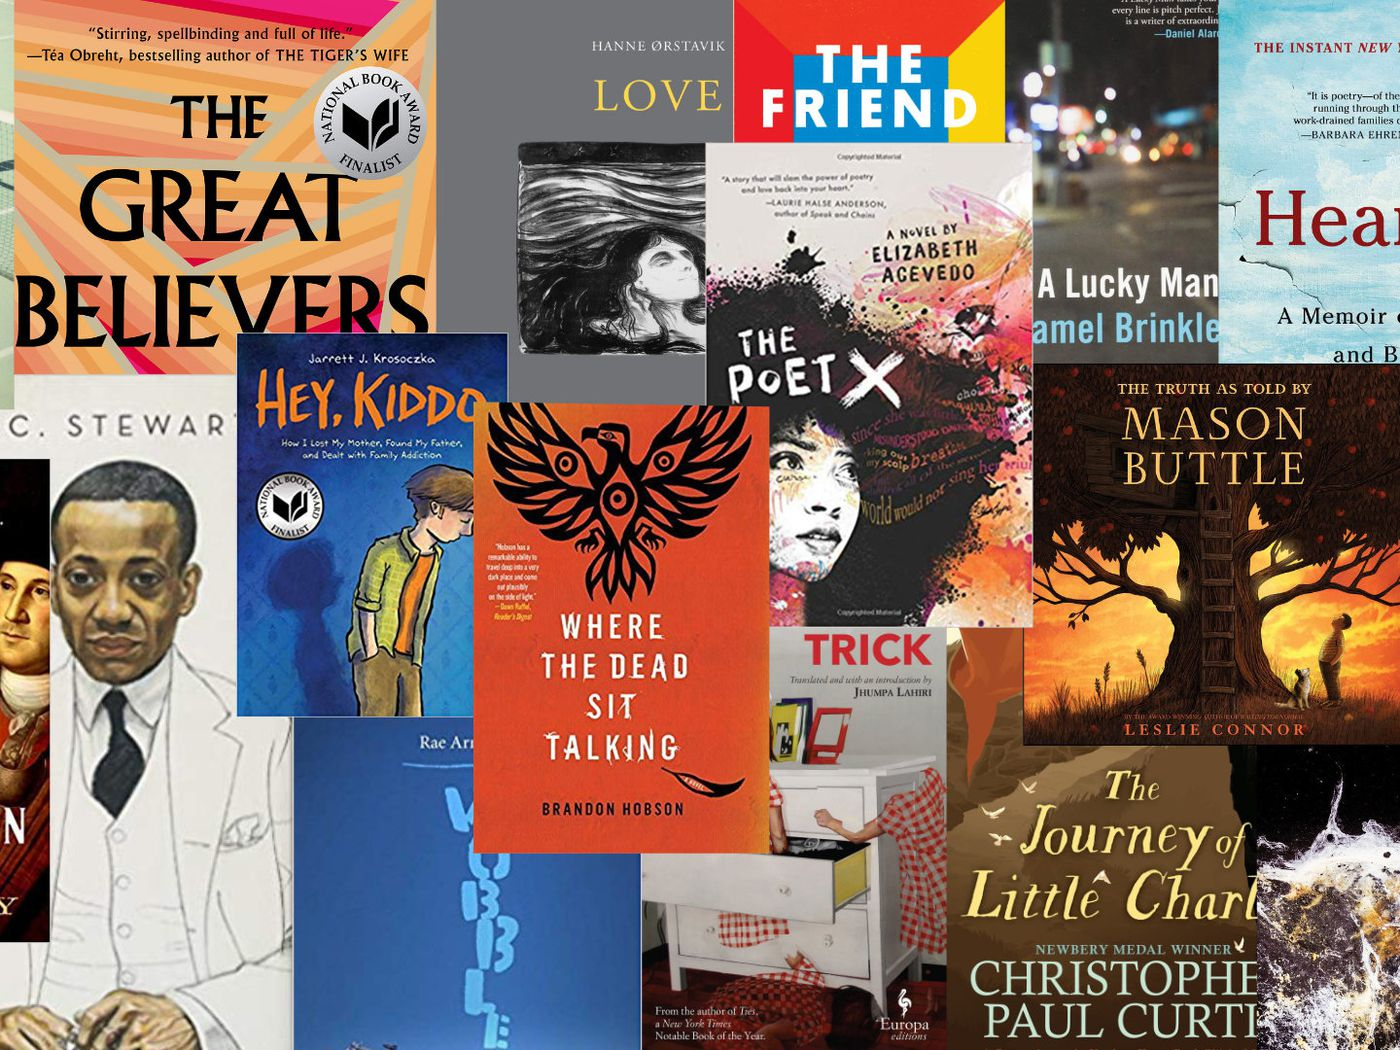 National Book Awards 2018: the winners and finalists, reviewed - Vox